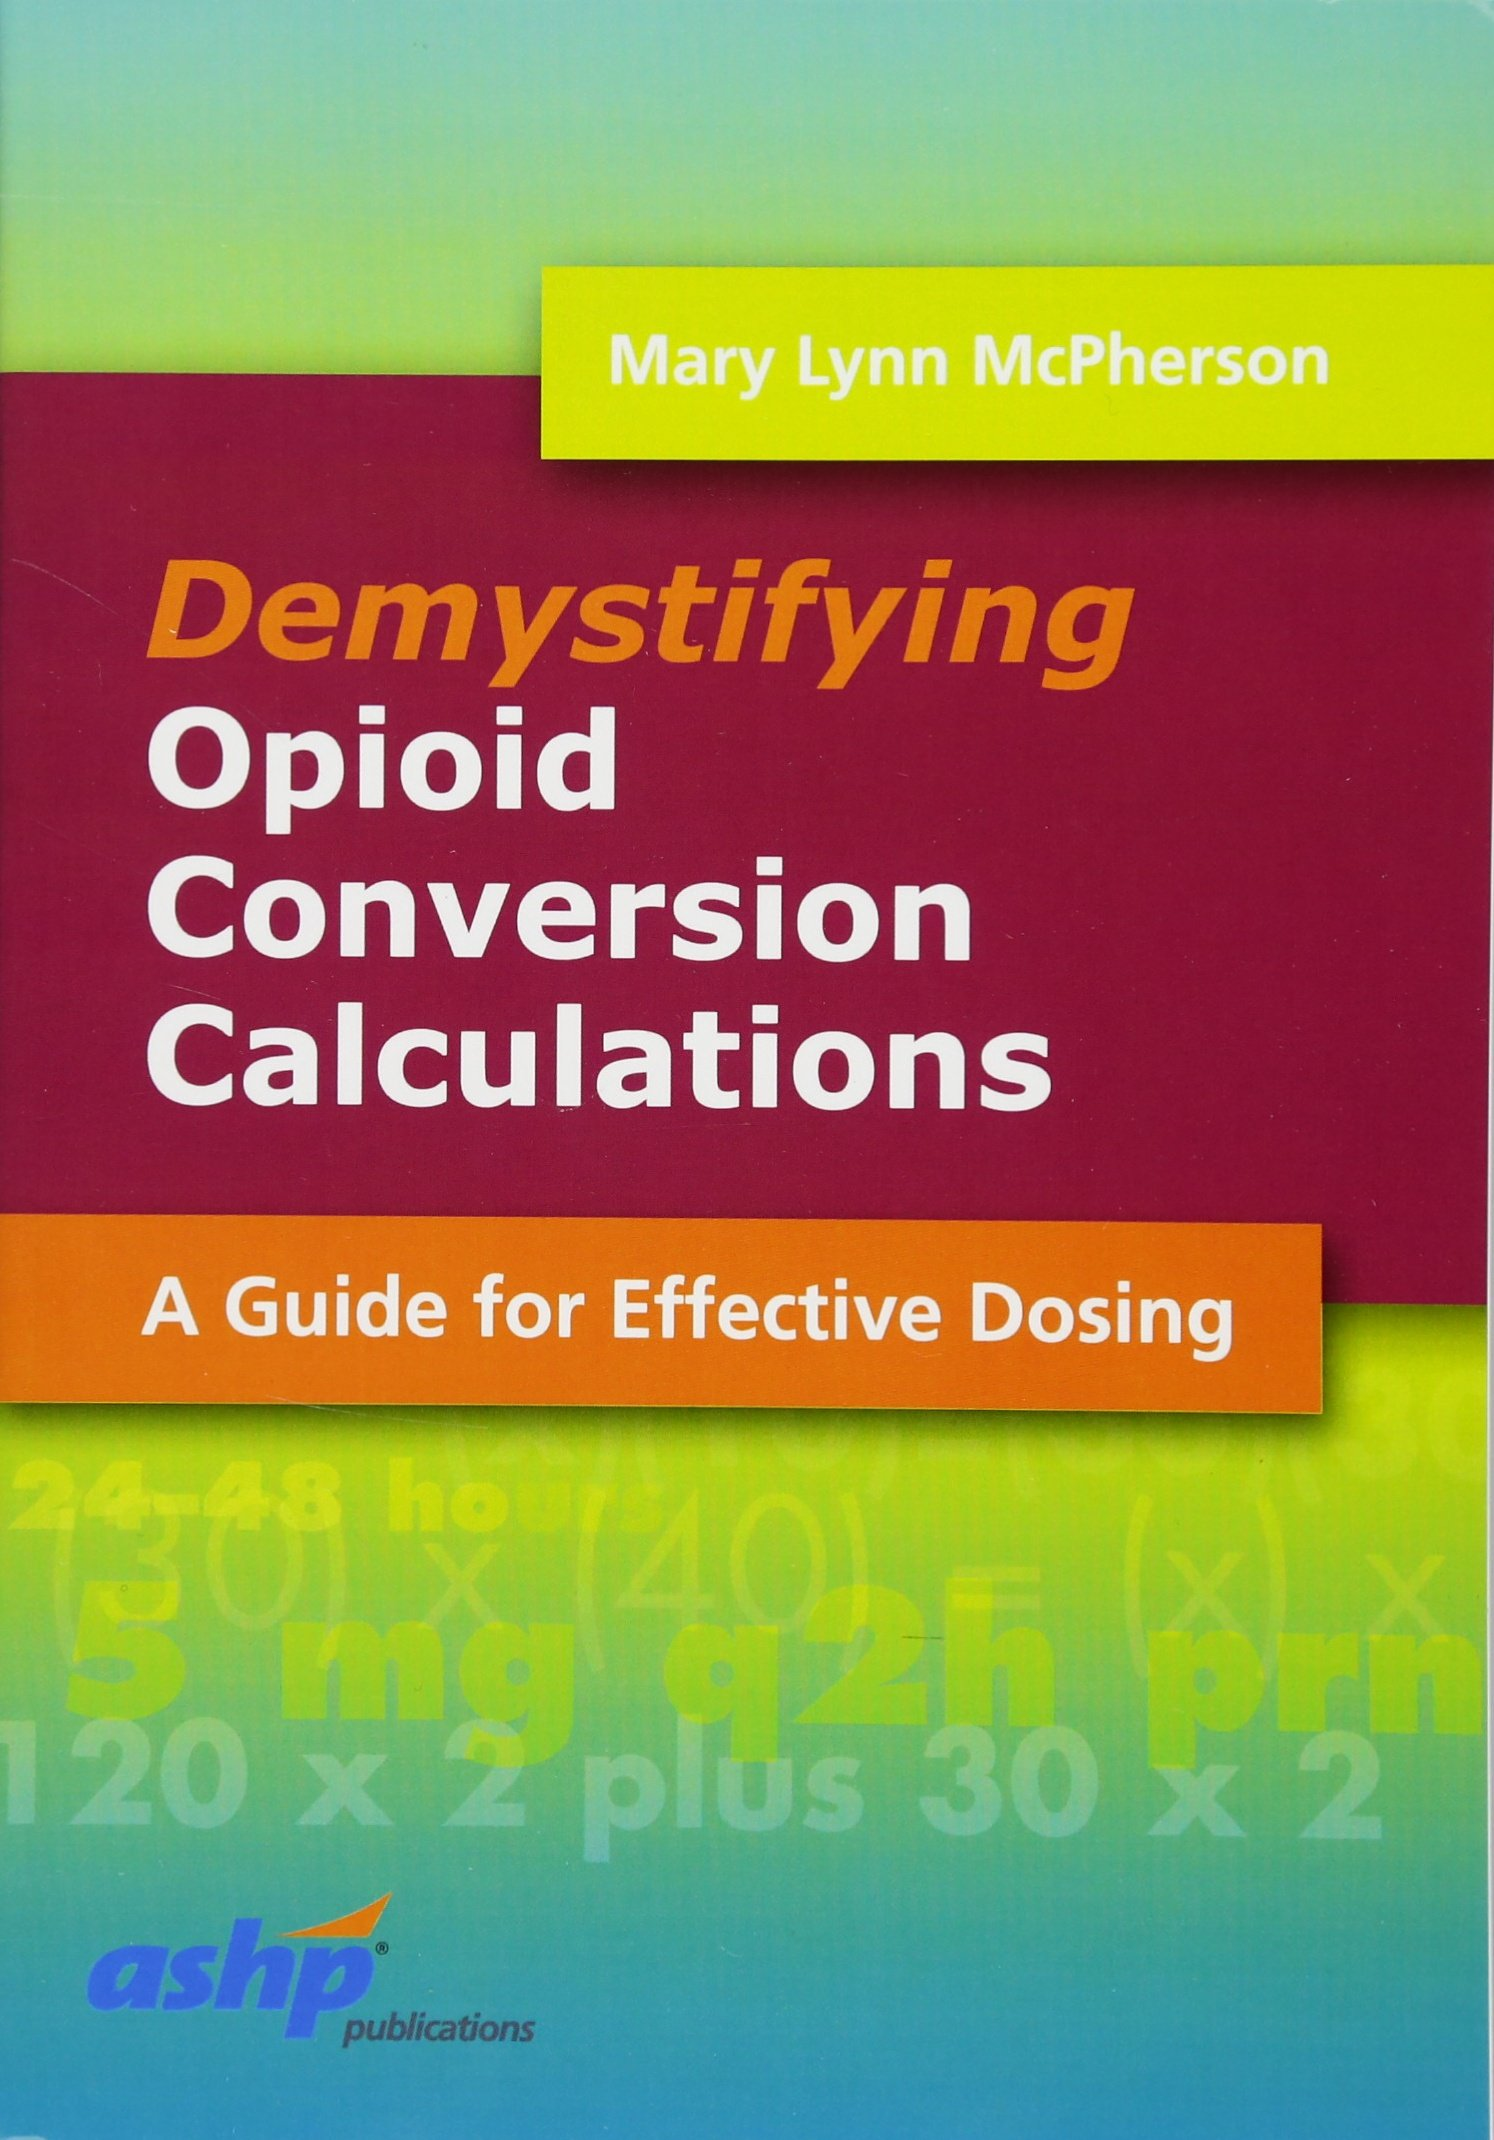 Download Demystifying Opioid Conversion Calculations: A Guide for Effective Dosing (McPherson, Demystifying Opioid Conversion Calcu...